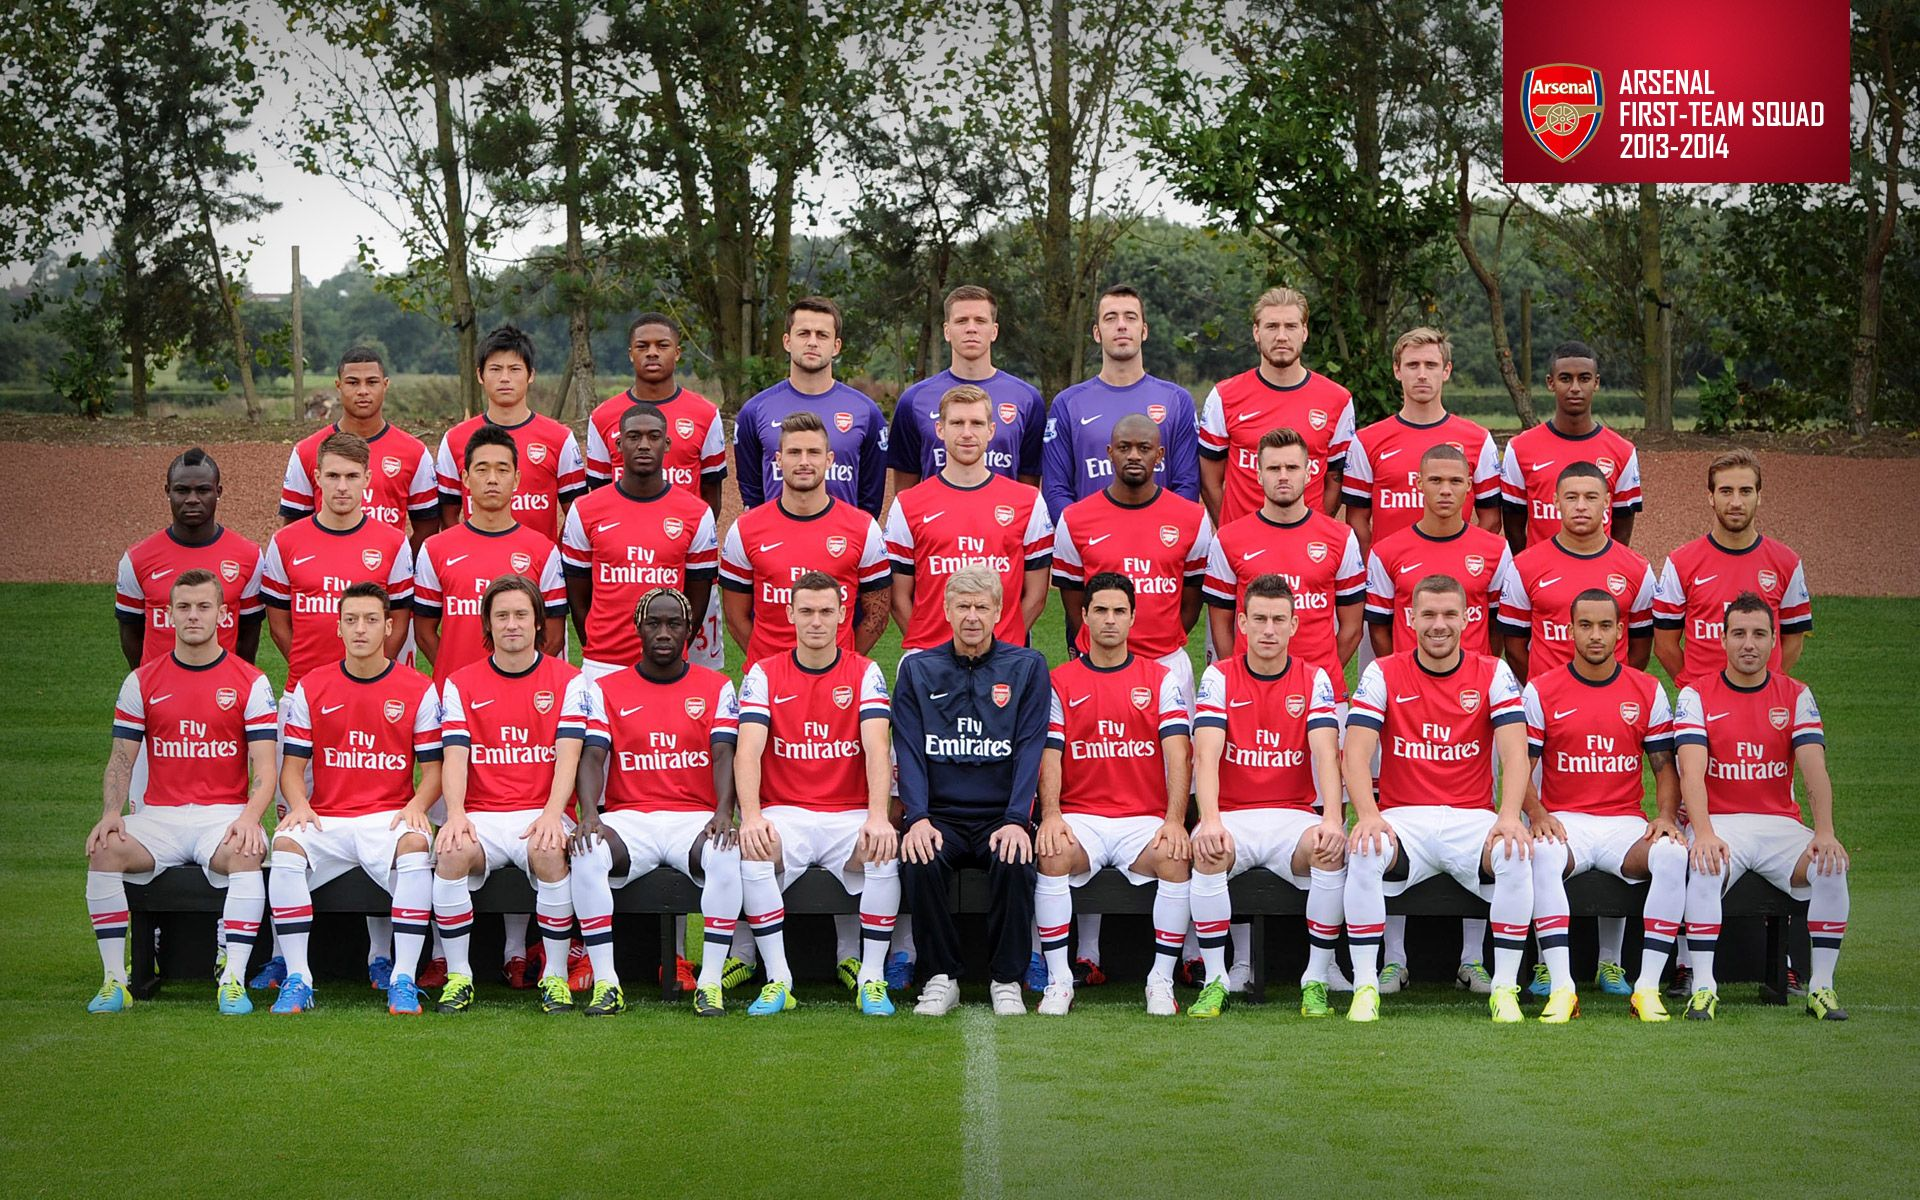 Arsenal Fc Wallpapers 2015 1920x1200